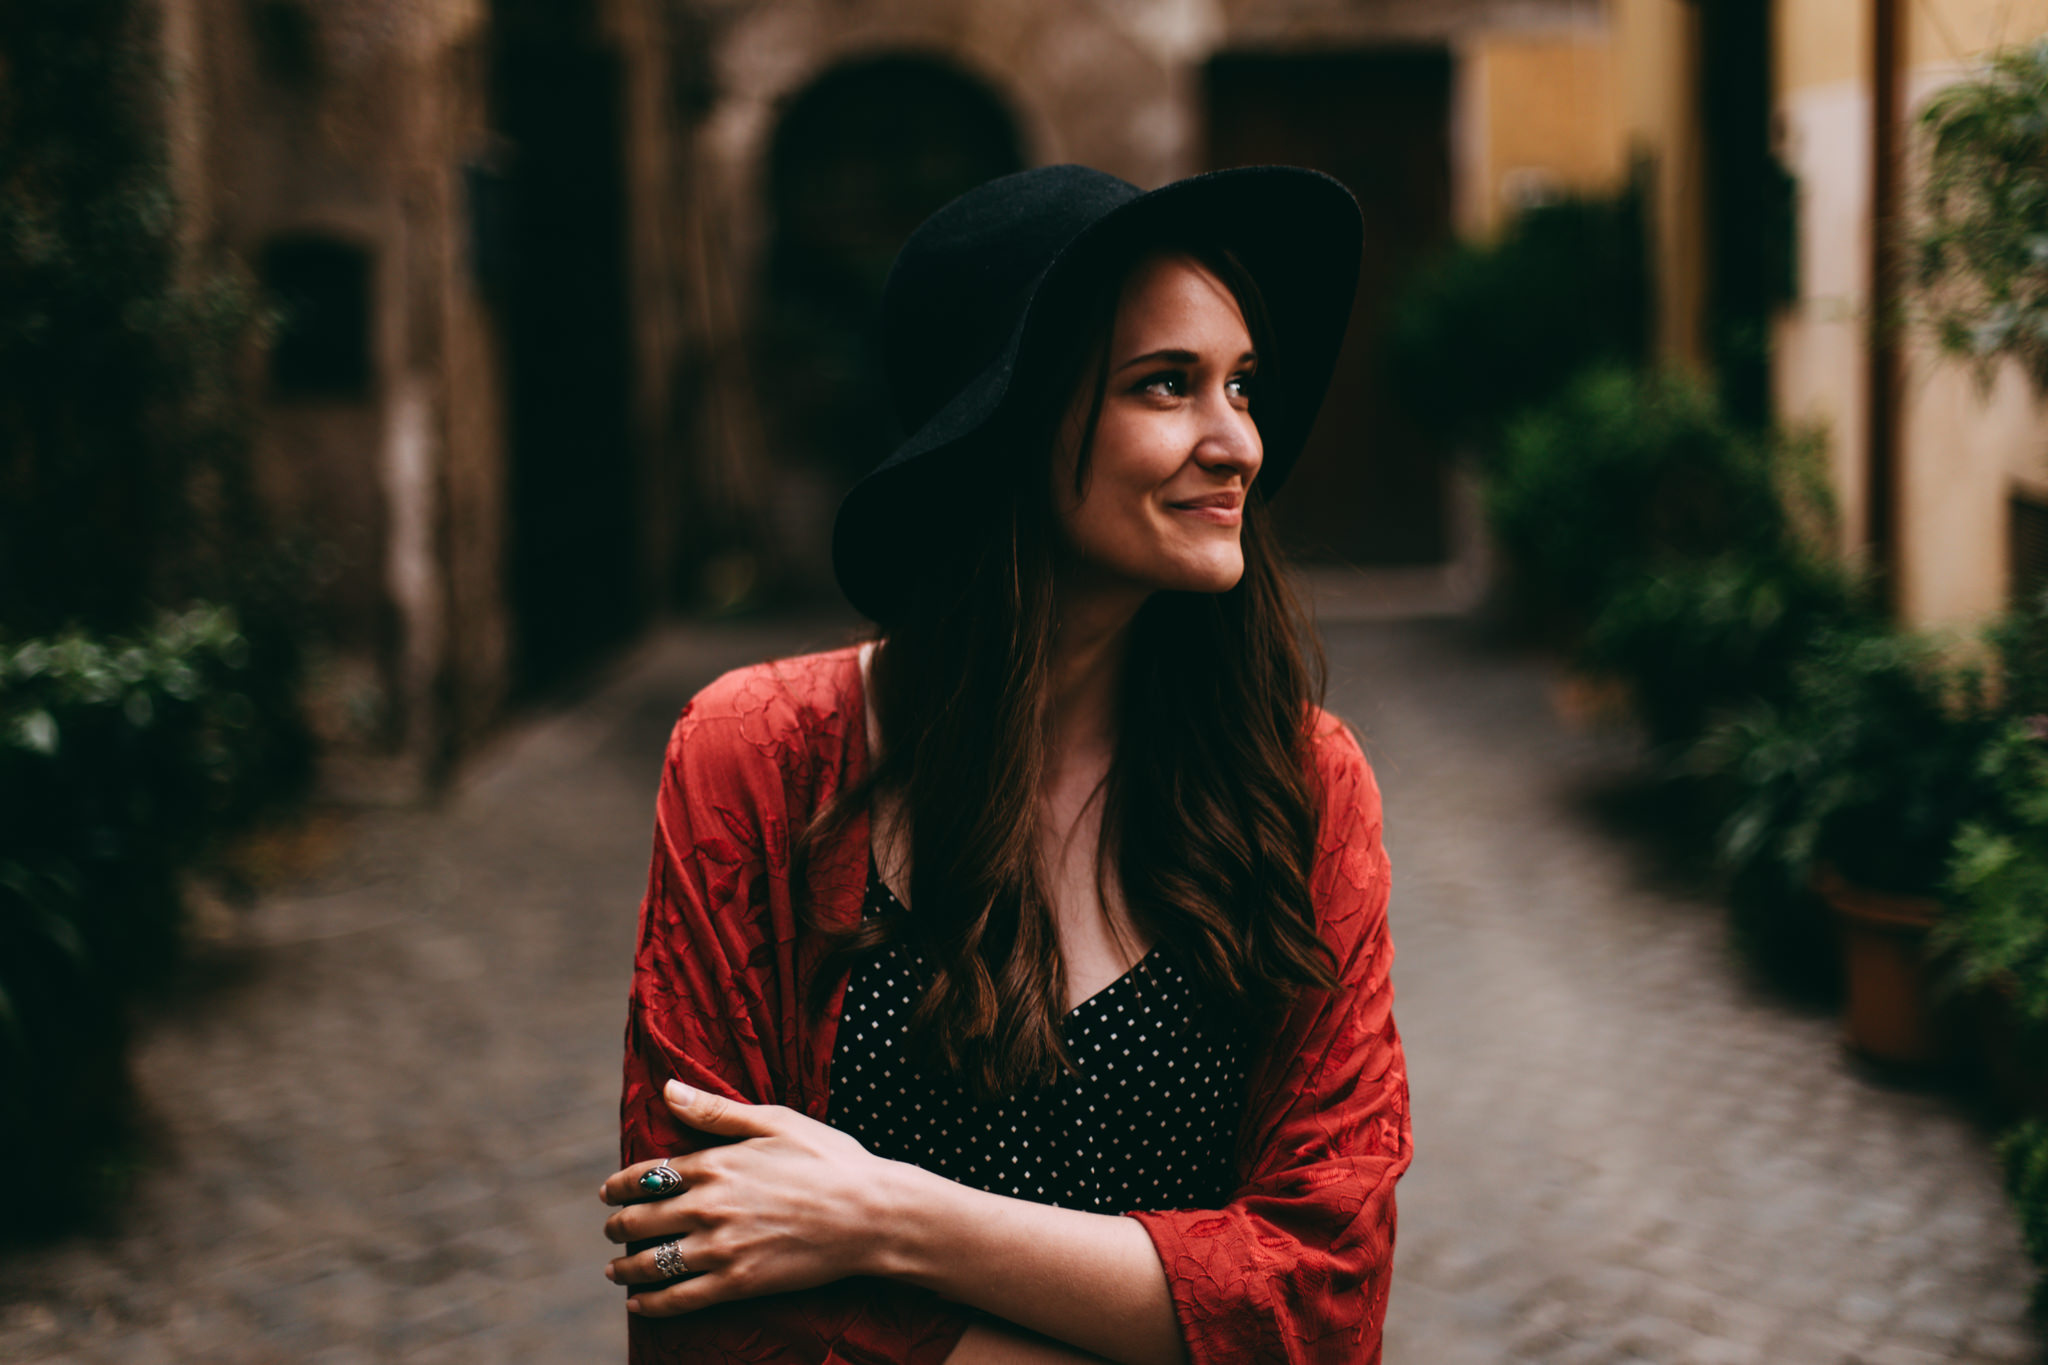 woman smiling in street of trastevere